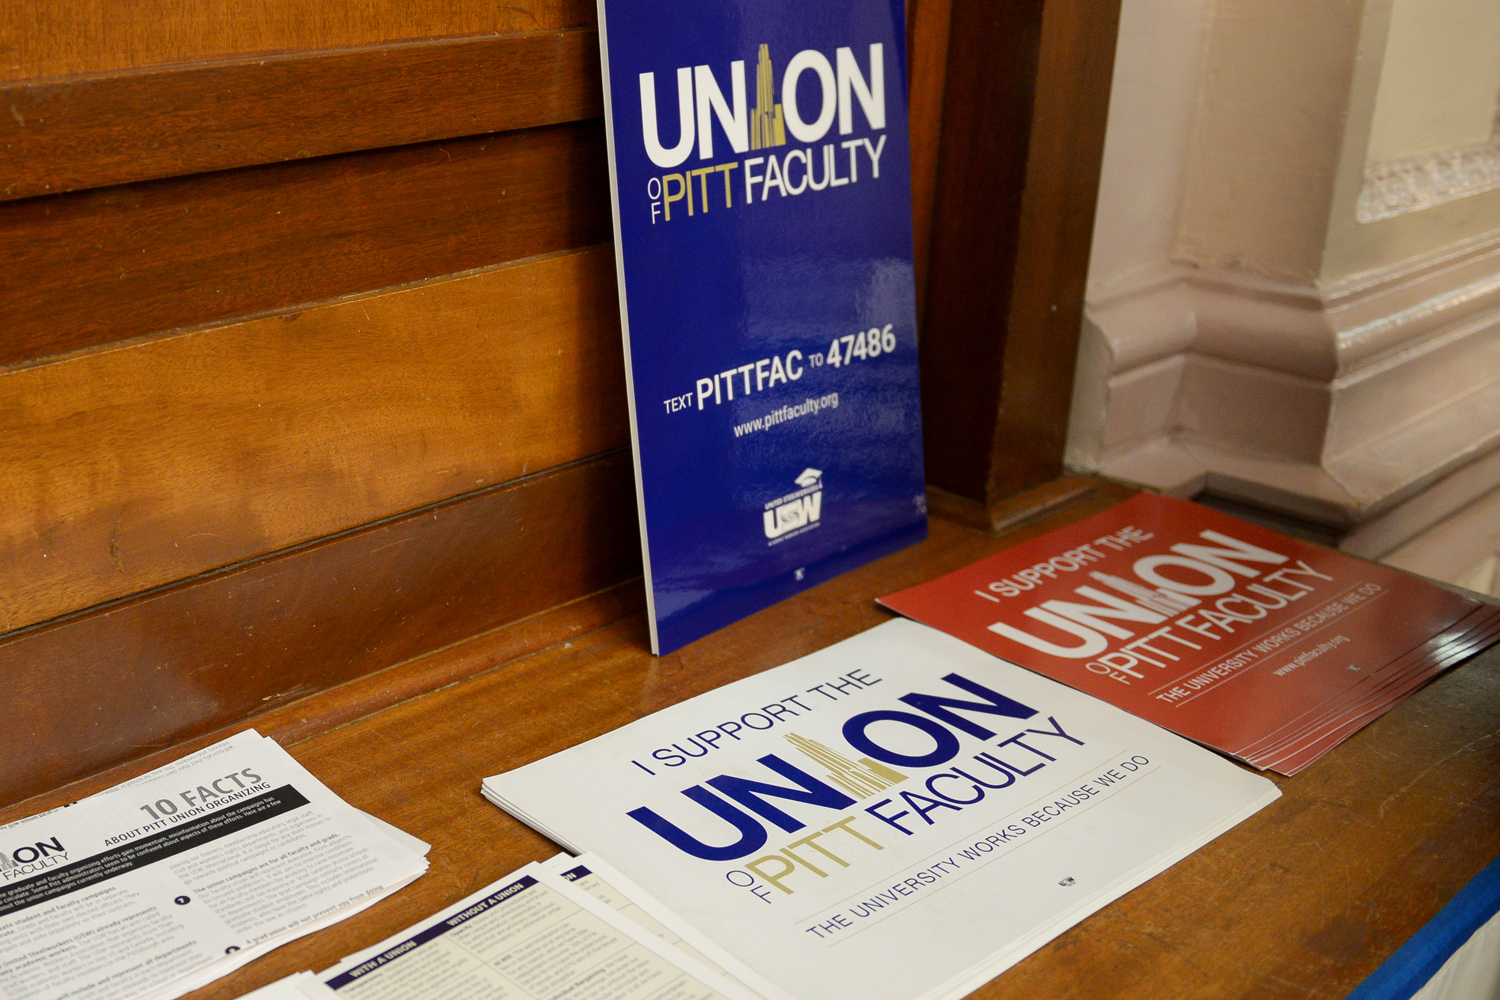 The University admitted to including an excess of 200 individuals in its list of 4,018 union-eligible faculty members.